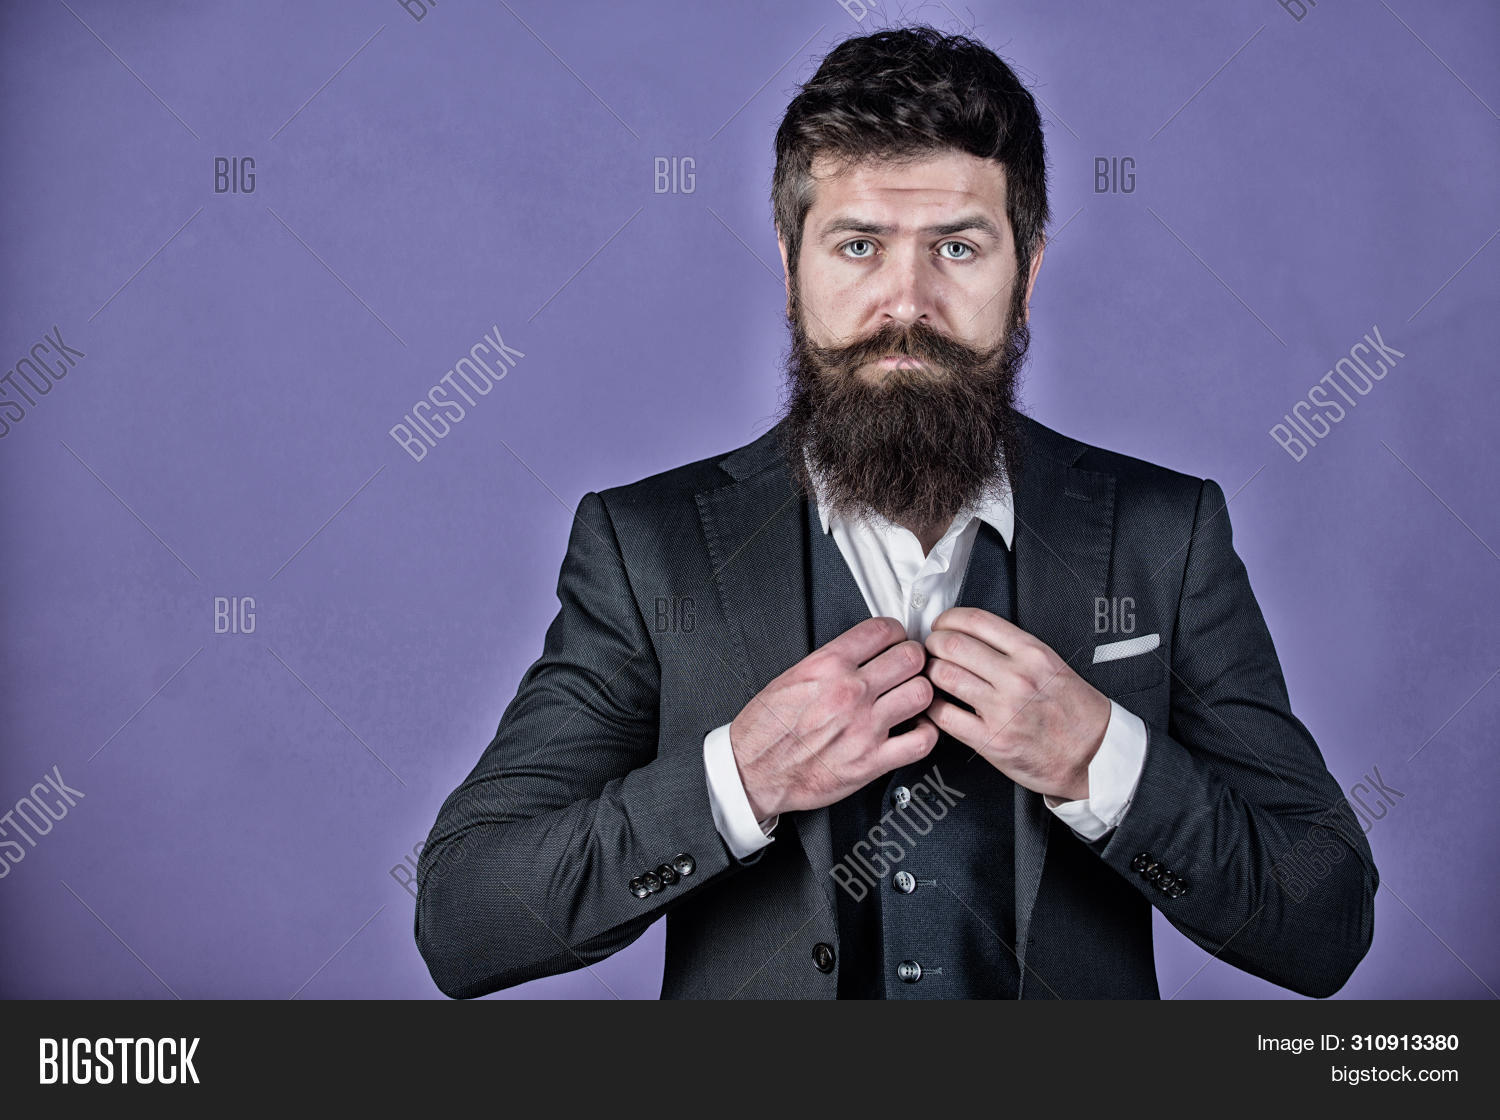 Everything Must Be Perfect. Businessman In Suit. Brutal Caucasian Hipster. Mature Hipster With Beard